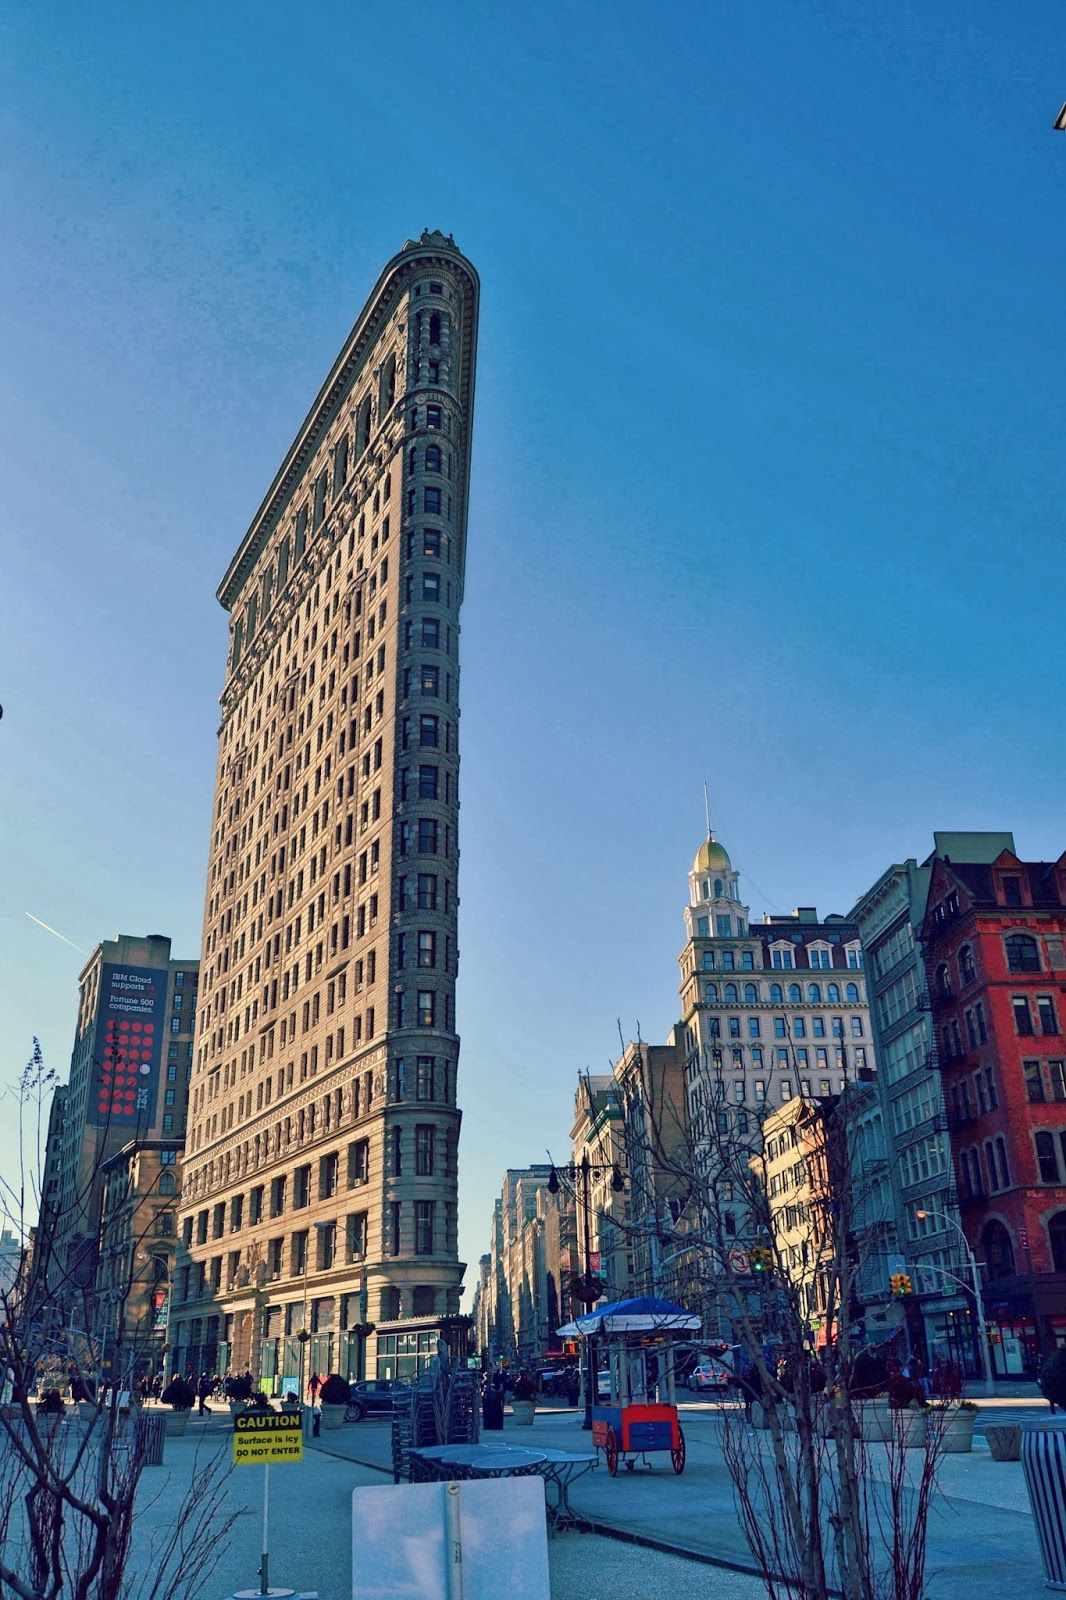 Honeymoon in New York #NYC #honeymoon #flatiron